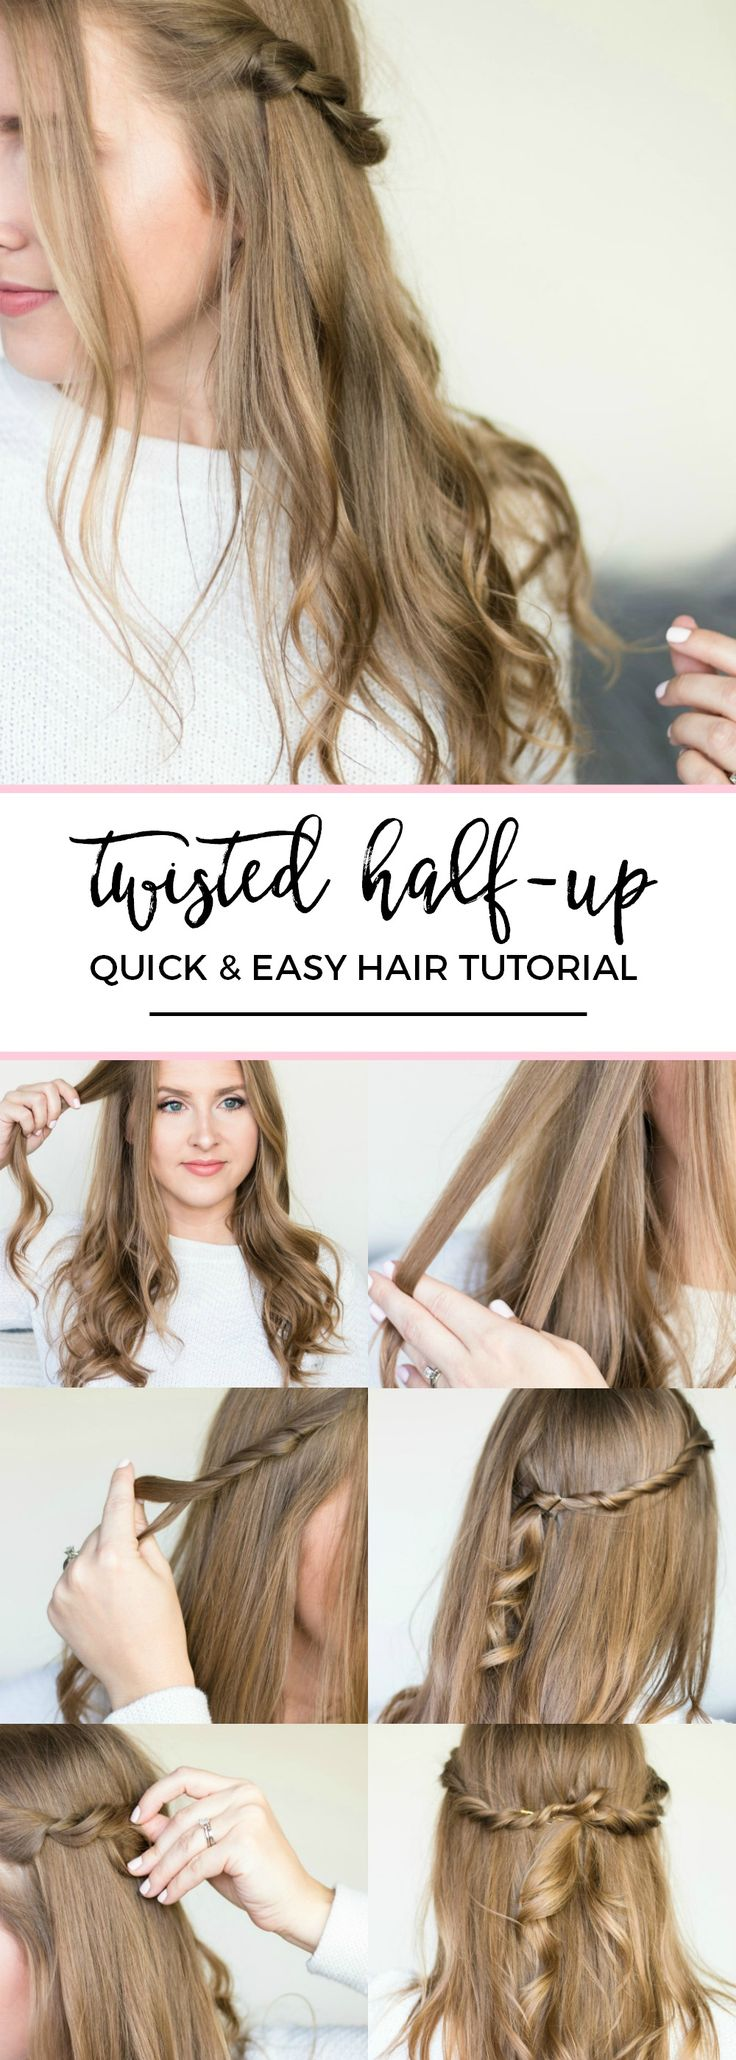 Half-up twisted hair style with soft waves hair tutorial | Quick and easy, no-heat hairstyle tutorials with beauty blogger Ashley Brooke Nicholas + the best shampoo and conditioner for dry hair from @PanteneUS ! #StrongisBeautiful sponsored